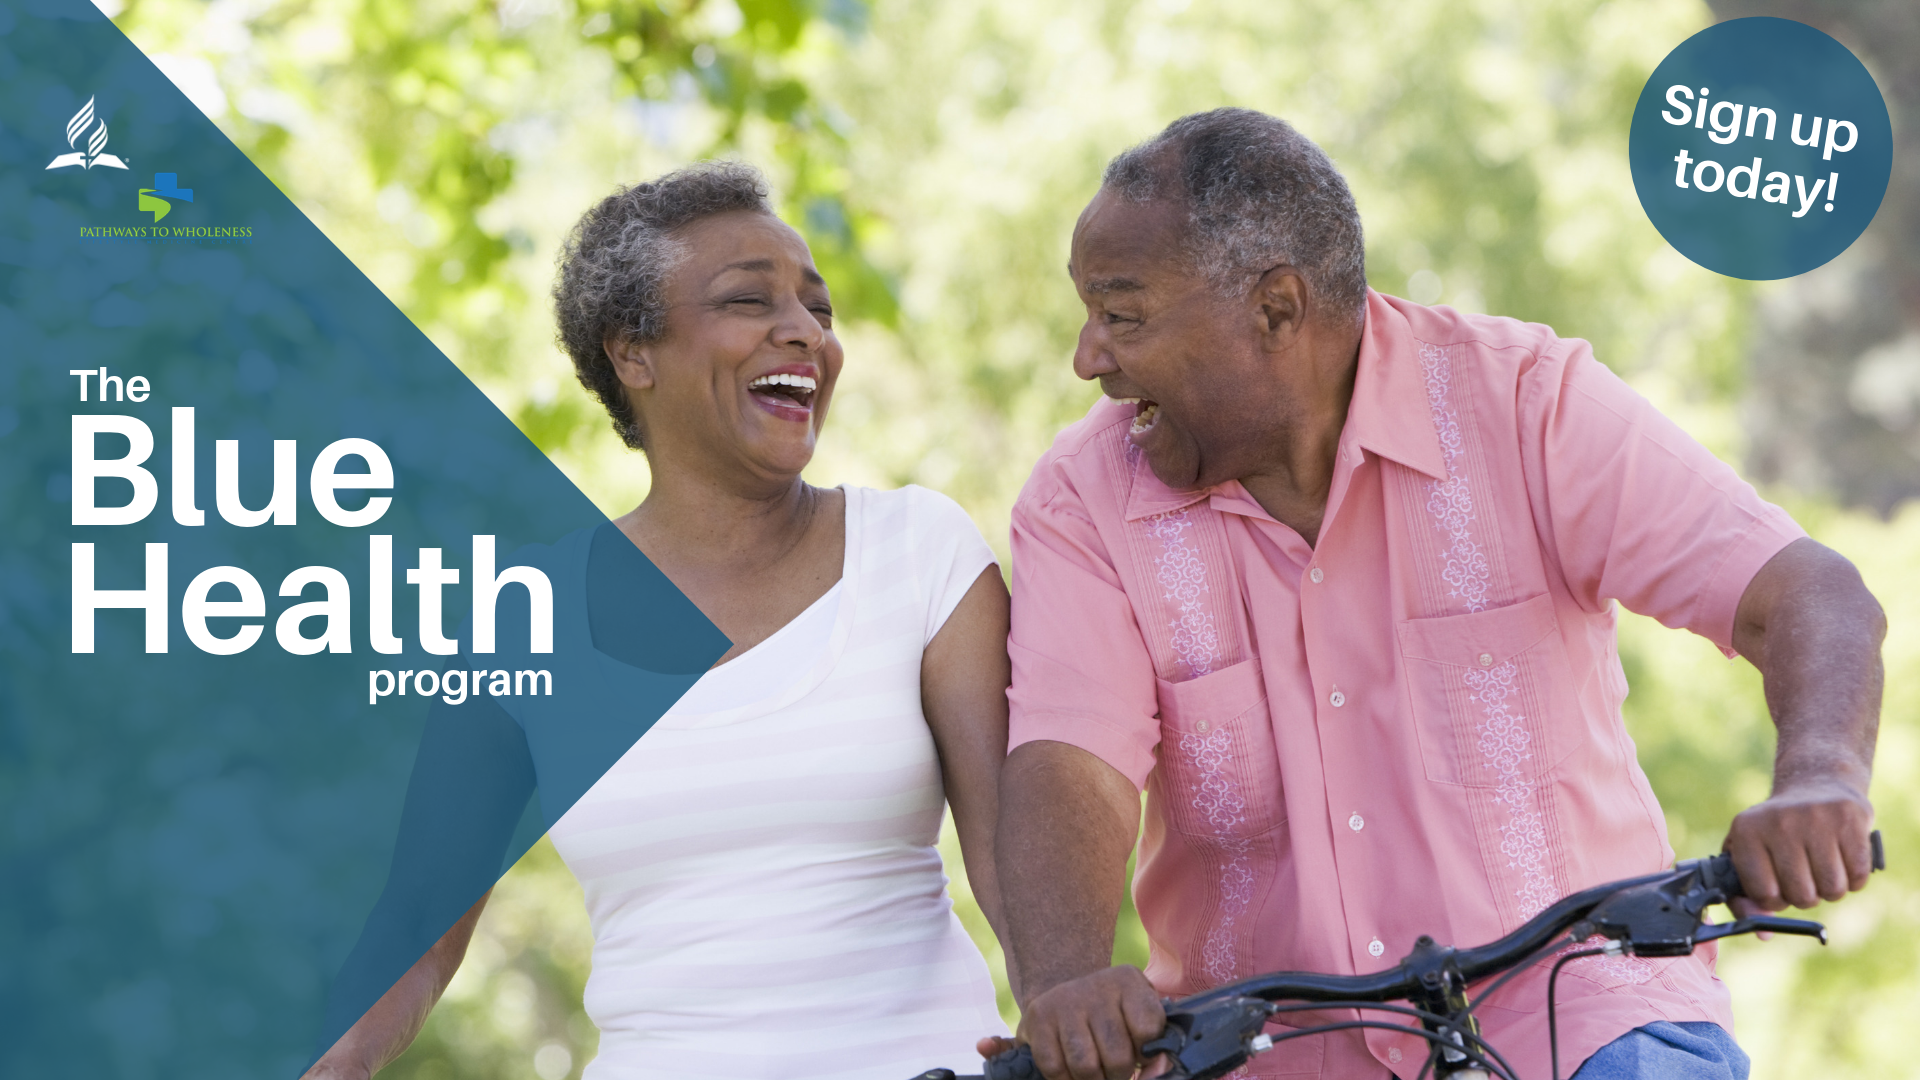 Join our Blue Health Program to learn the simple yet powerful lifestyle principles of the world's longest living and healthiest people -